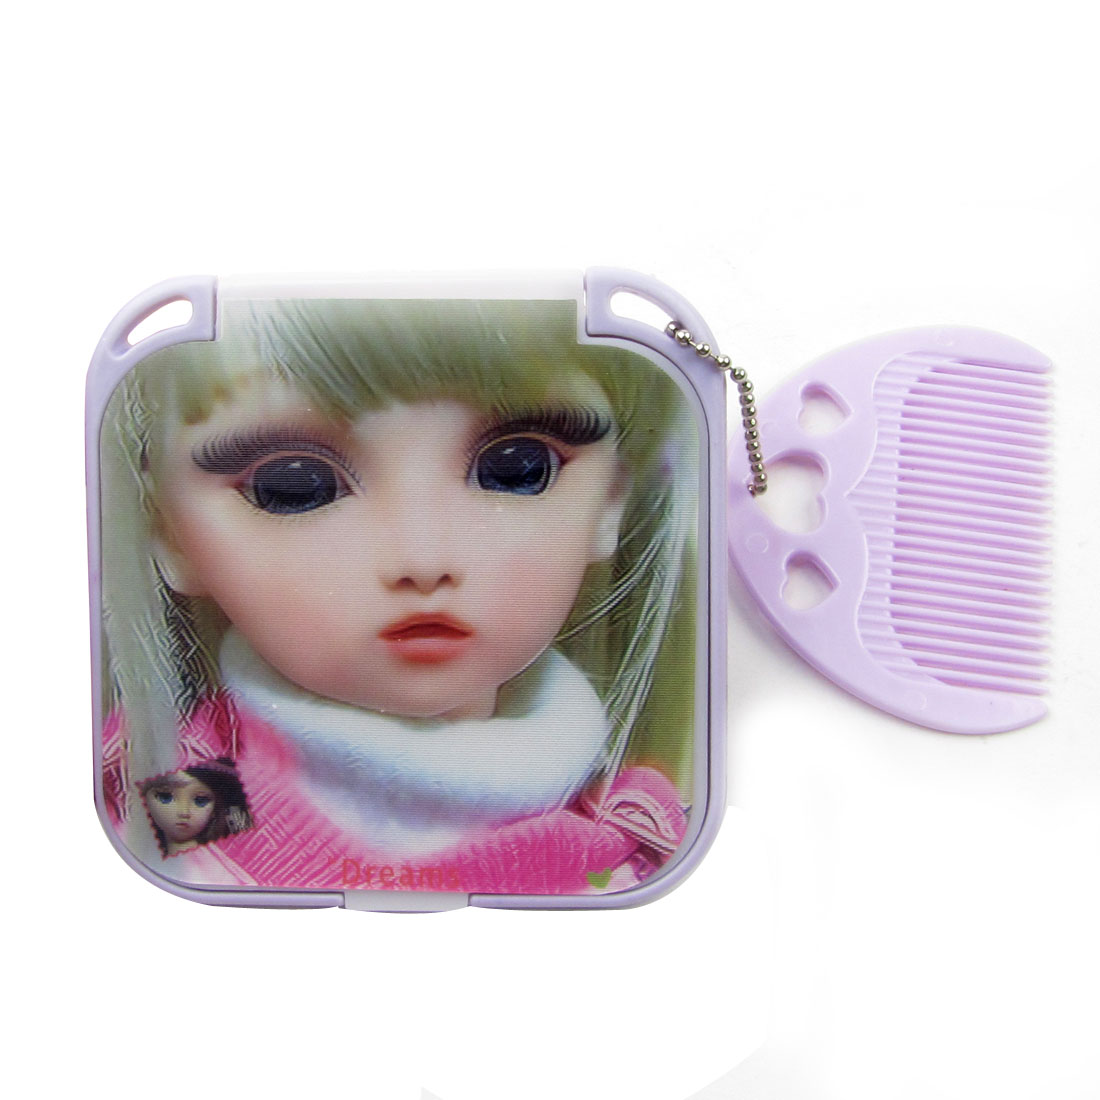 Lady Make up Tool Cartoon Cover Square Design Folding Handheld Mirror w Comb